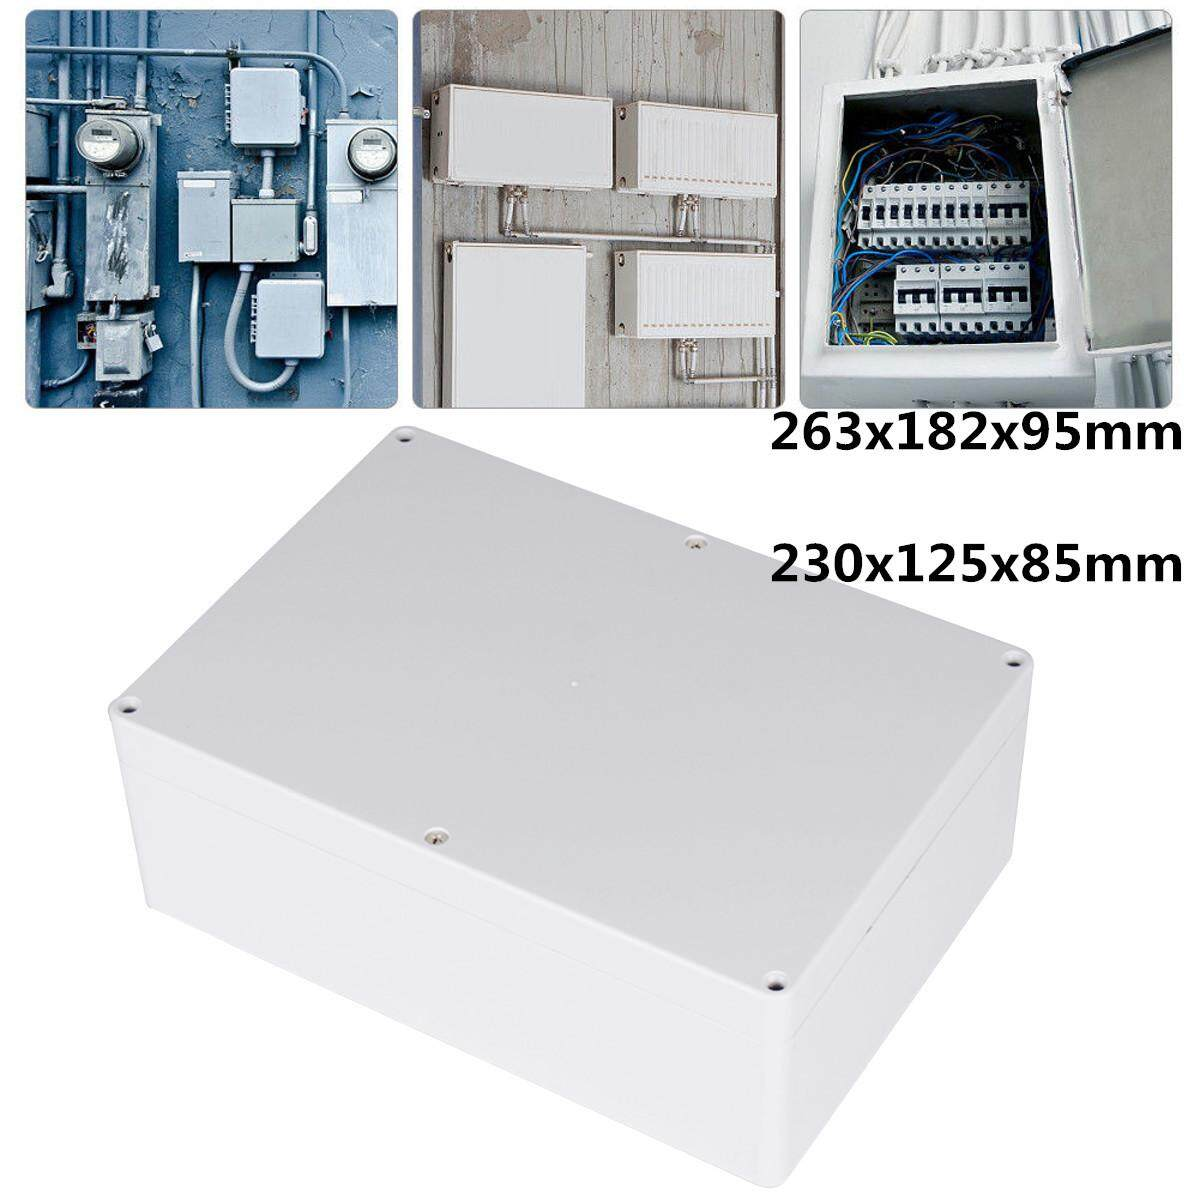 Waterproof Clear Electronic Project Box Enclosure Plastic Case Junction Box - intl